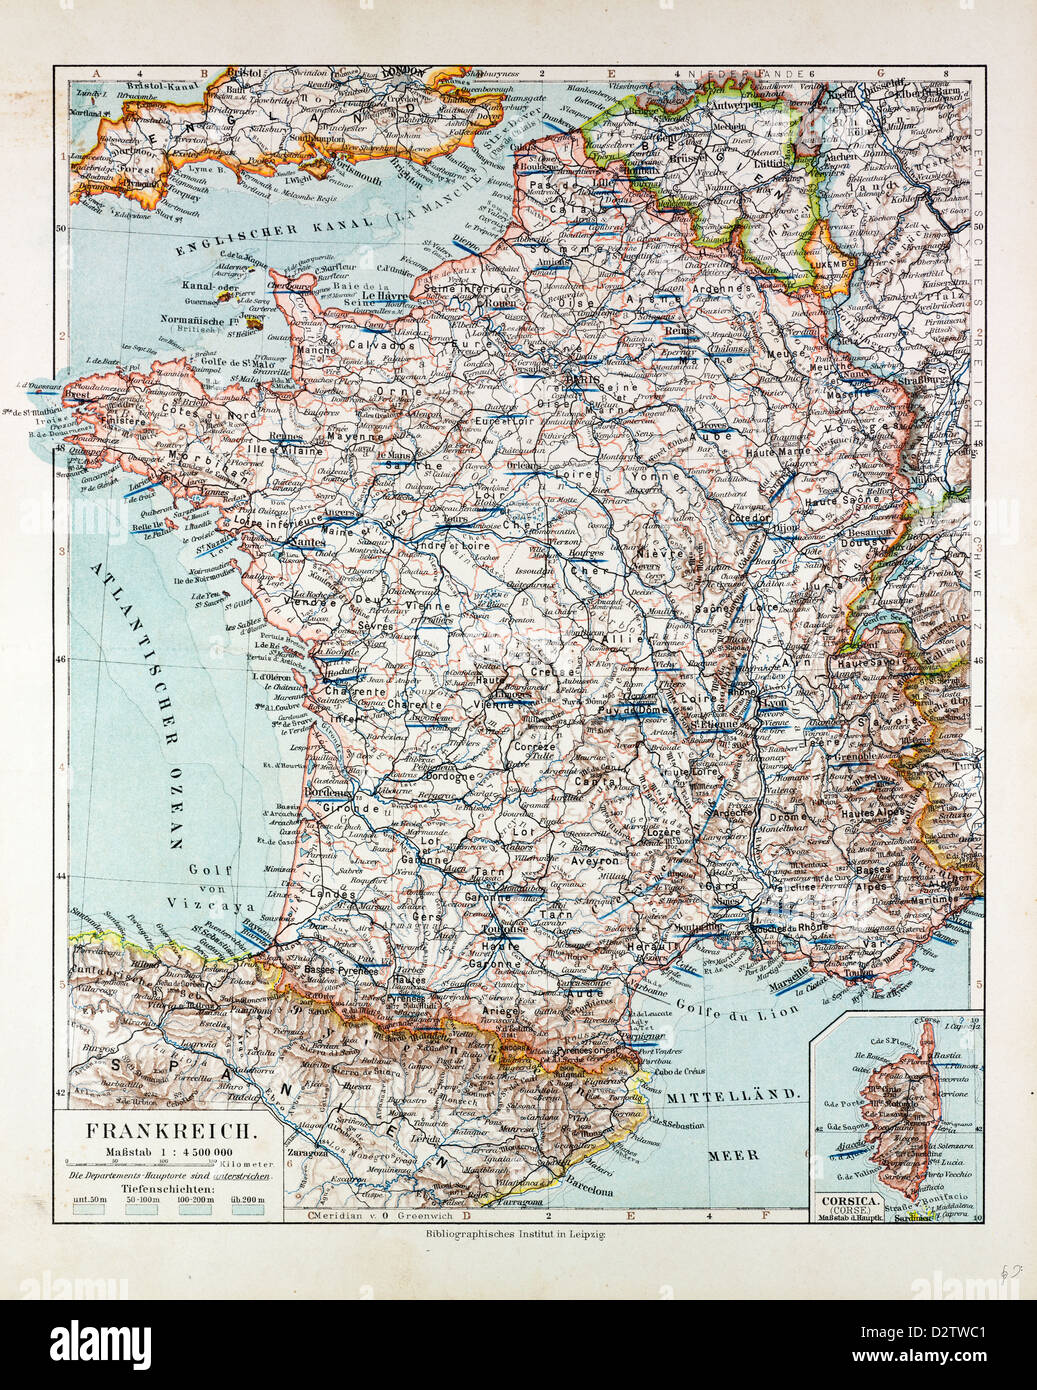 MAP OF FRANCE 1899 - Stock Image